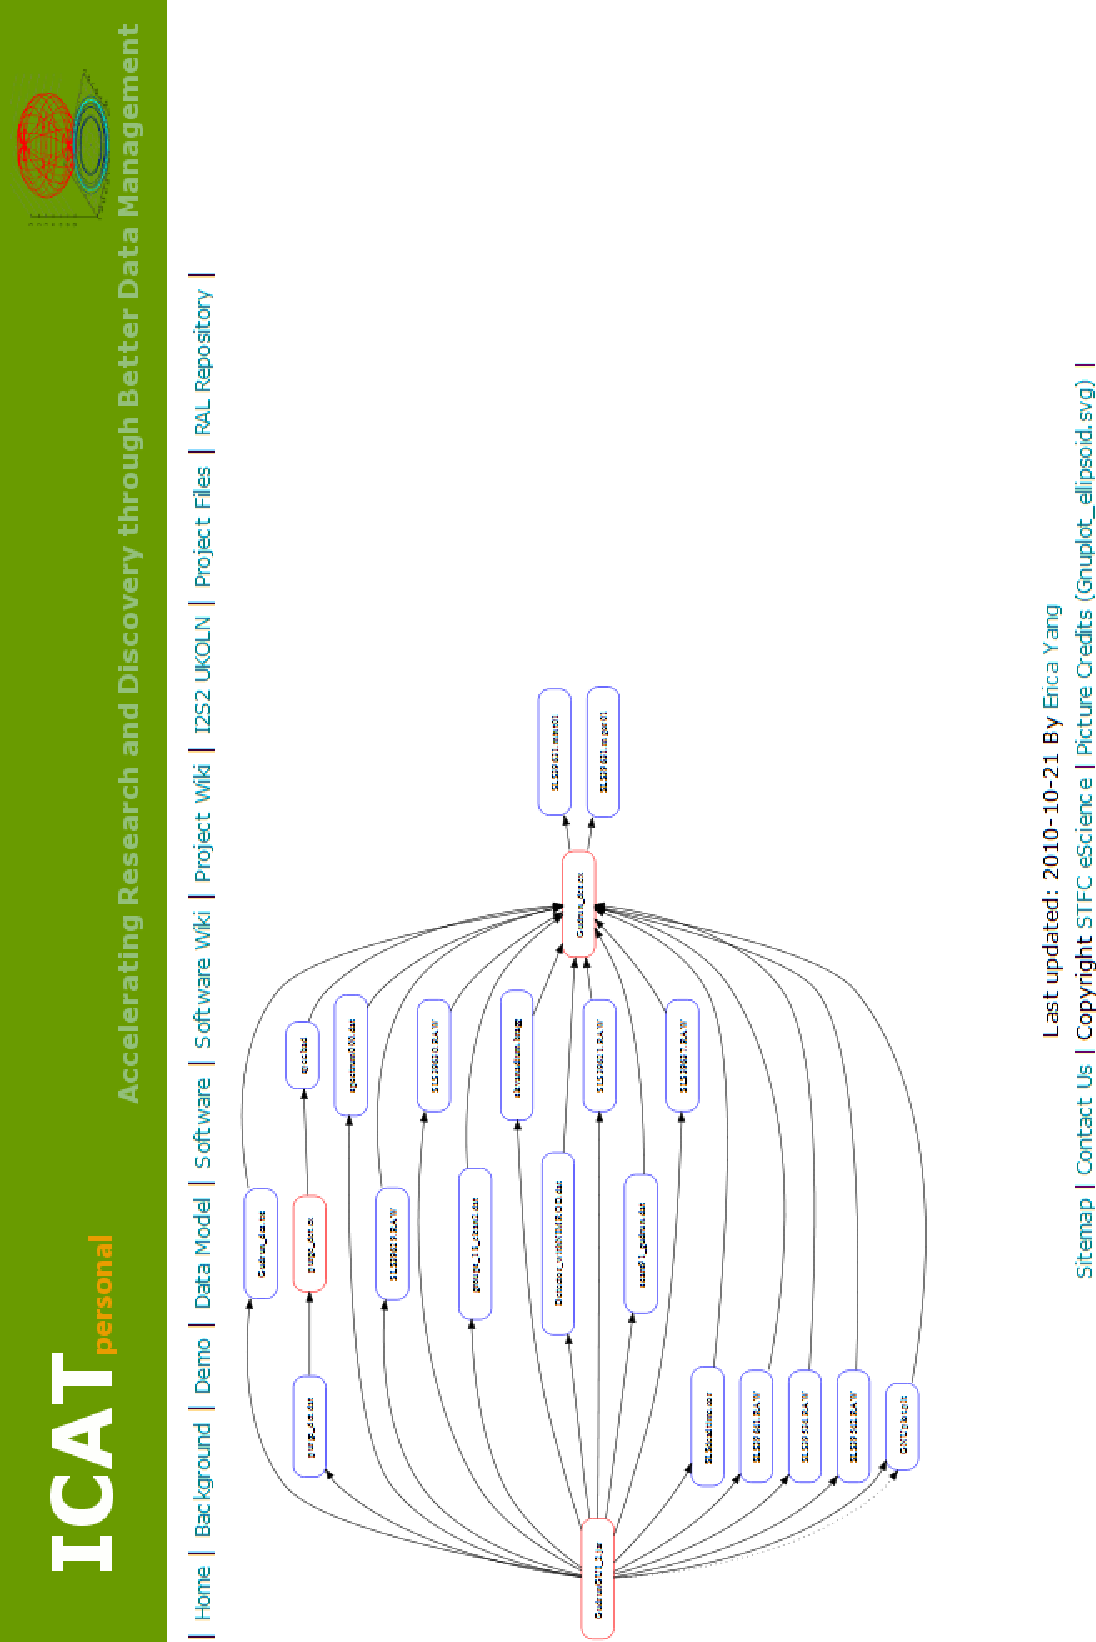 Figure 8: The Gudrun example in a Web browser view with details of data files involved